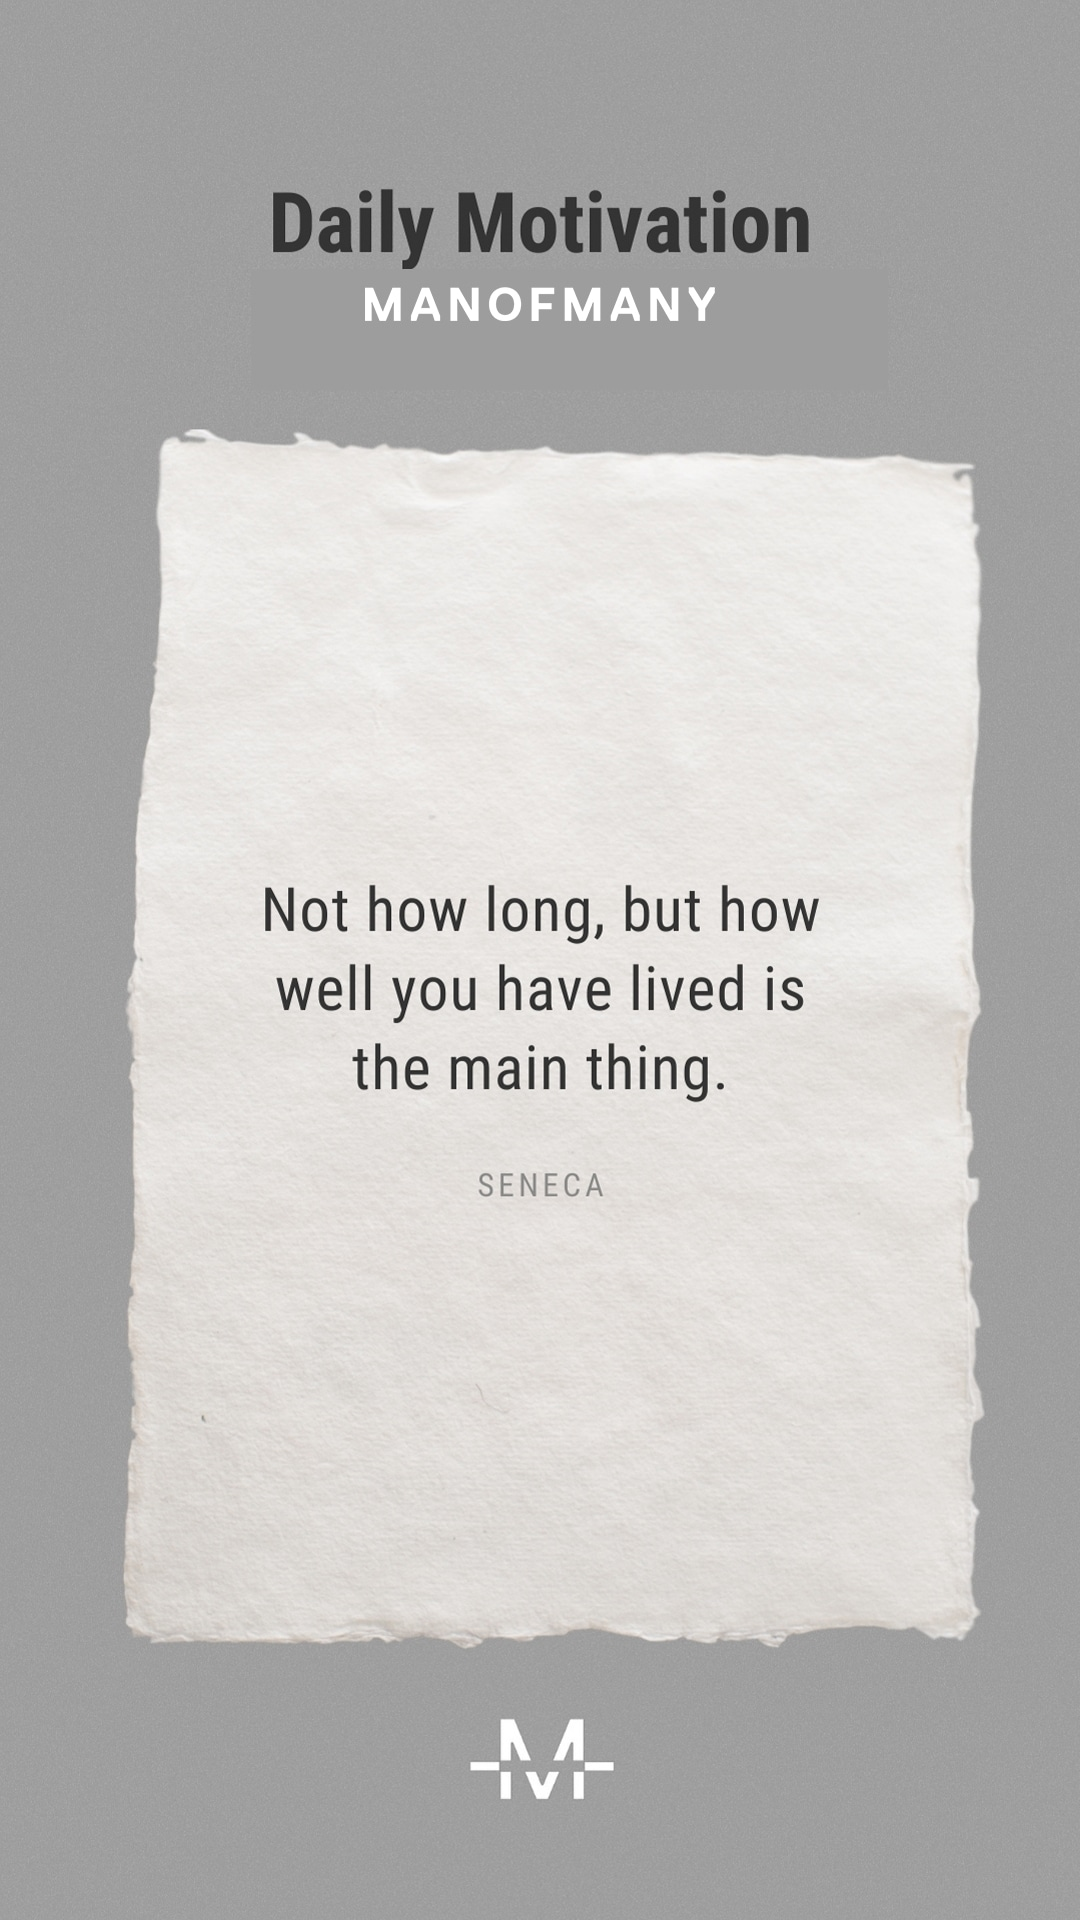 Not how long, but how well you have lived is the main thing. — Seneca quote